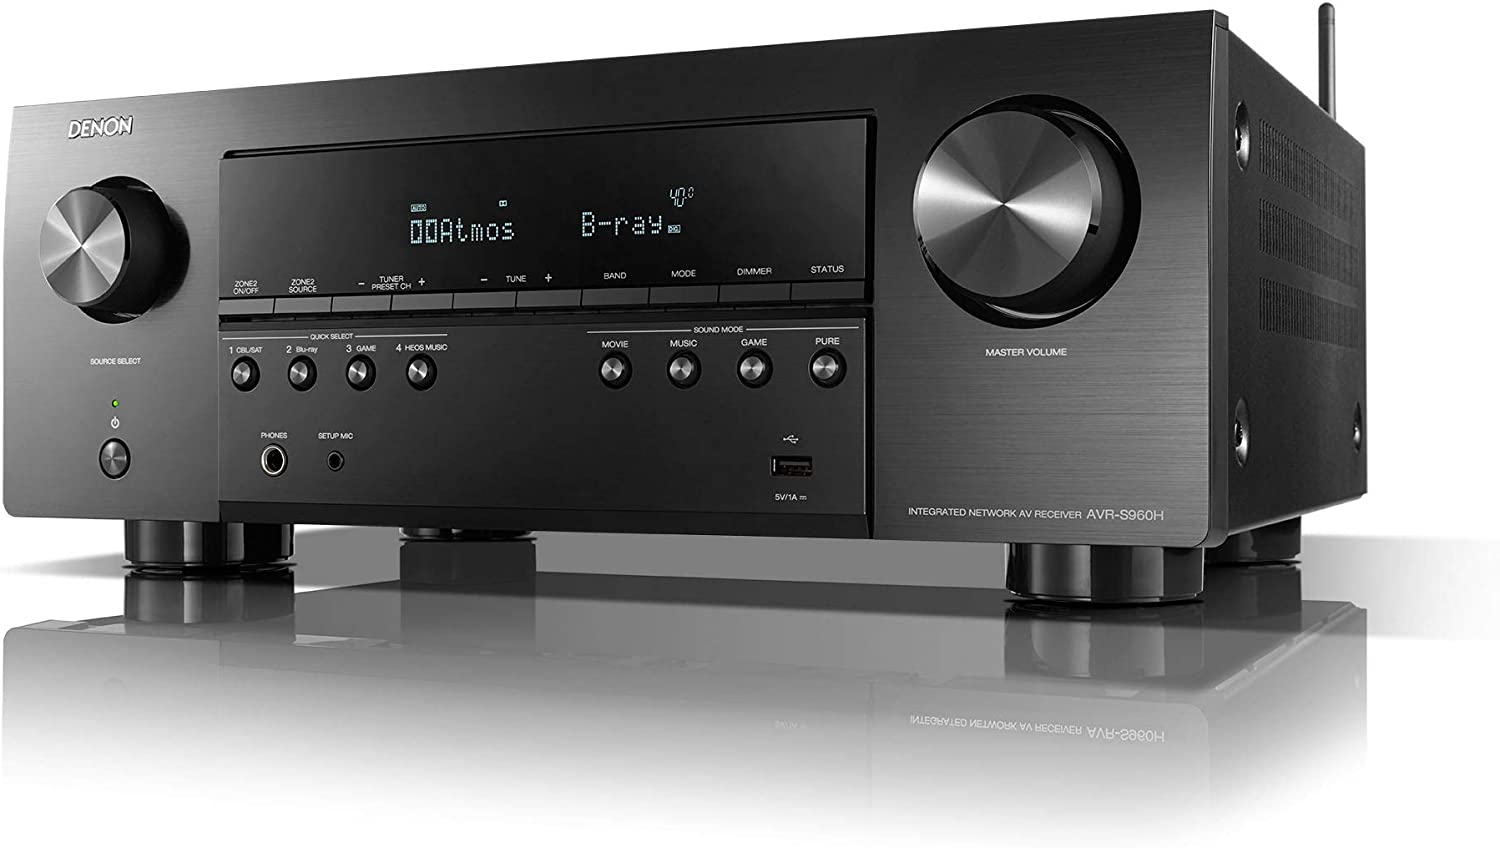 Denon AVR-S960H (2020 Model) 7.2ch 8K AV Receiver with 3D Audio, HEOS Built-in and Voice Control, Black, Model Number: AVRS960H